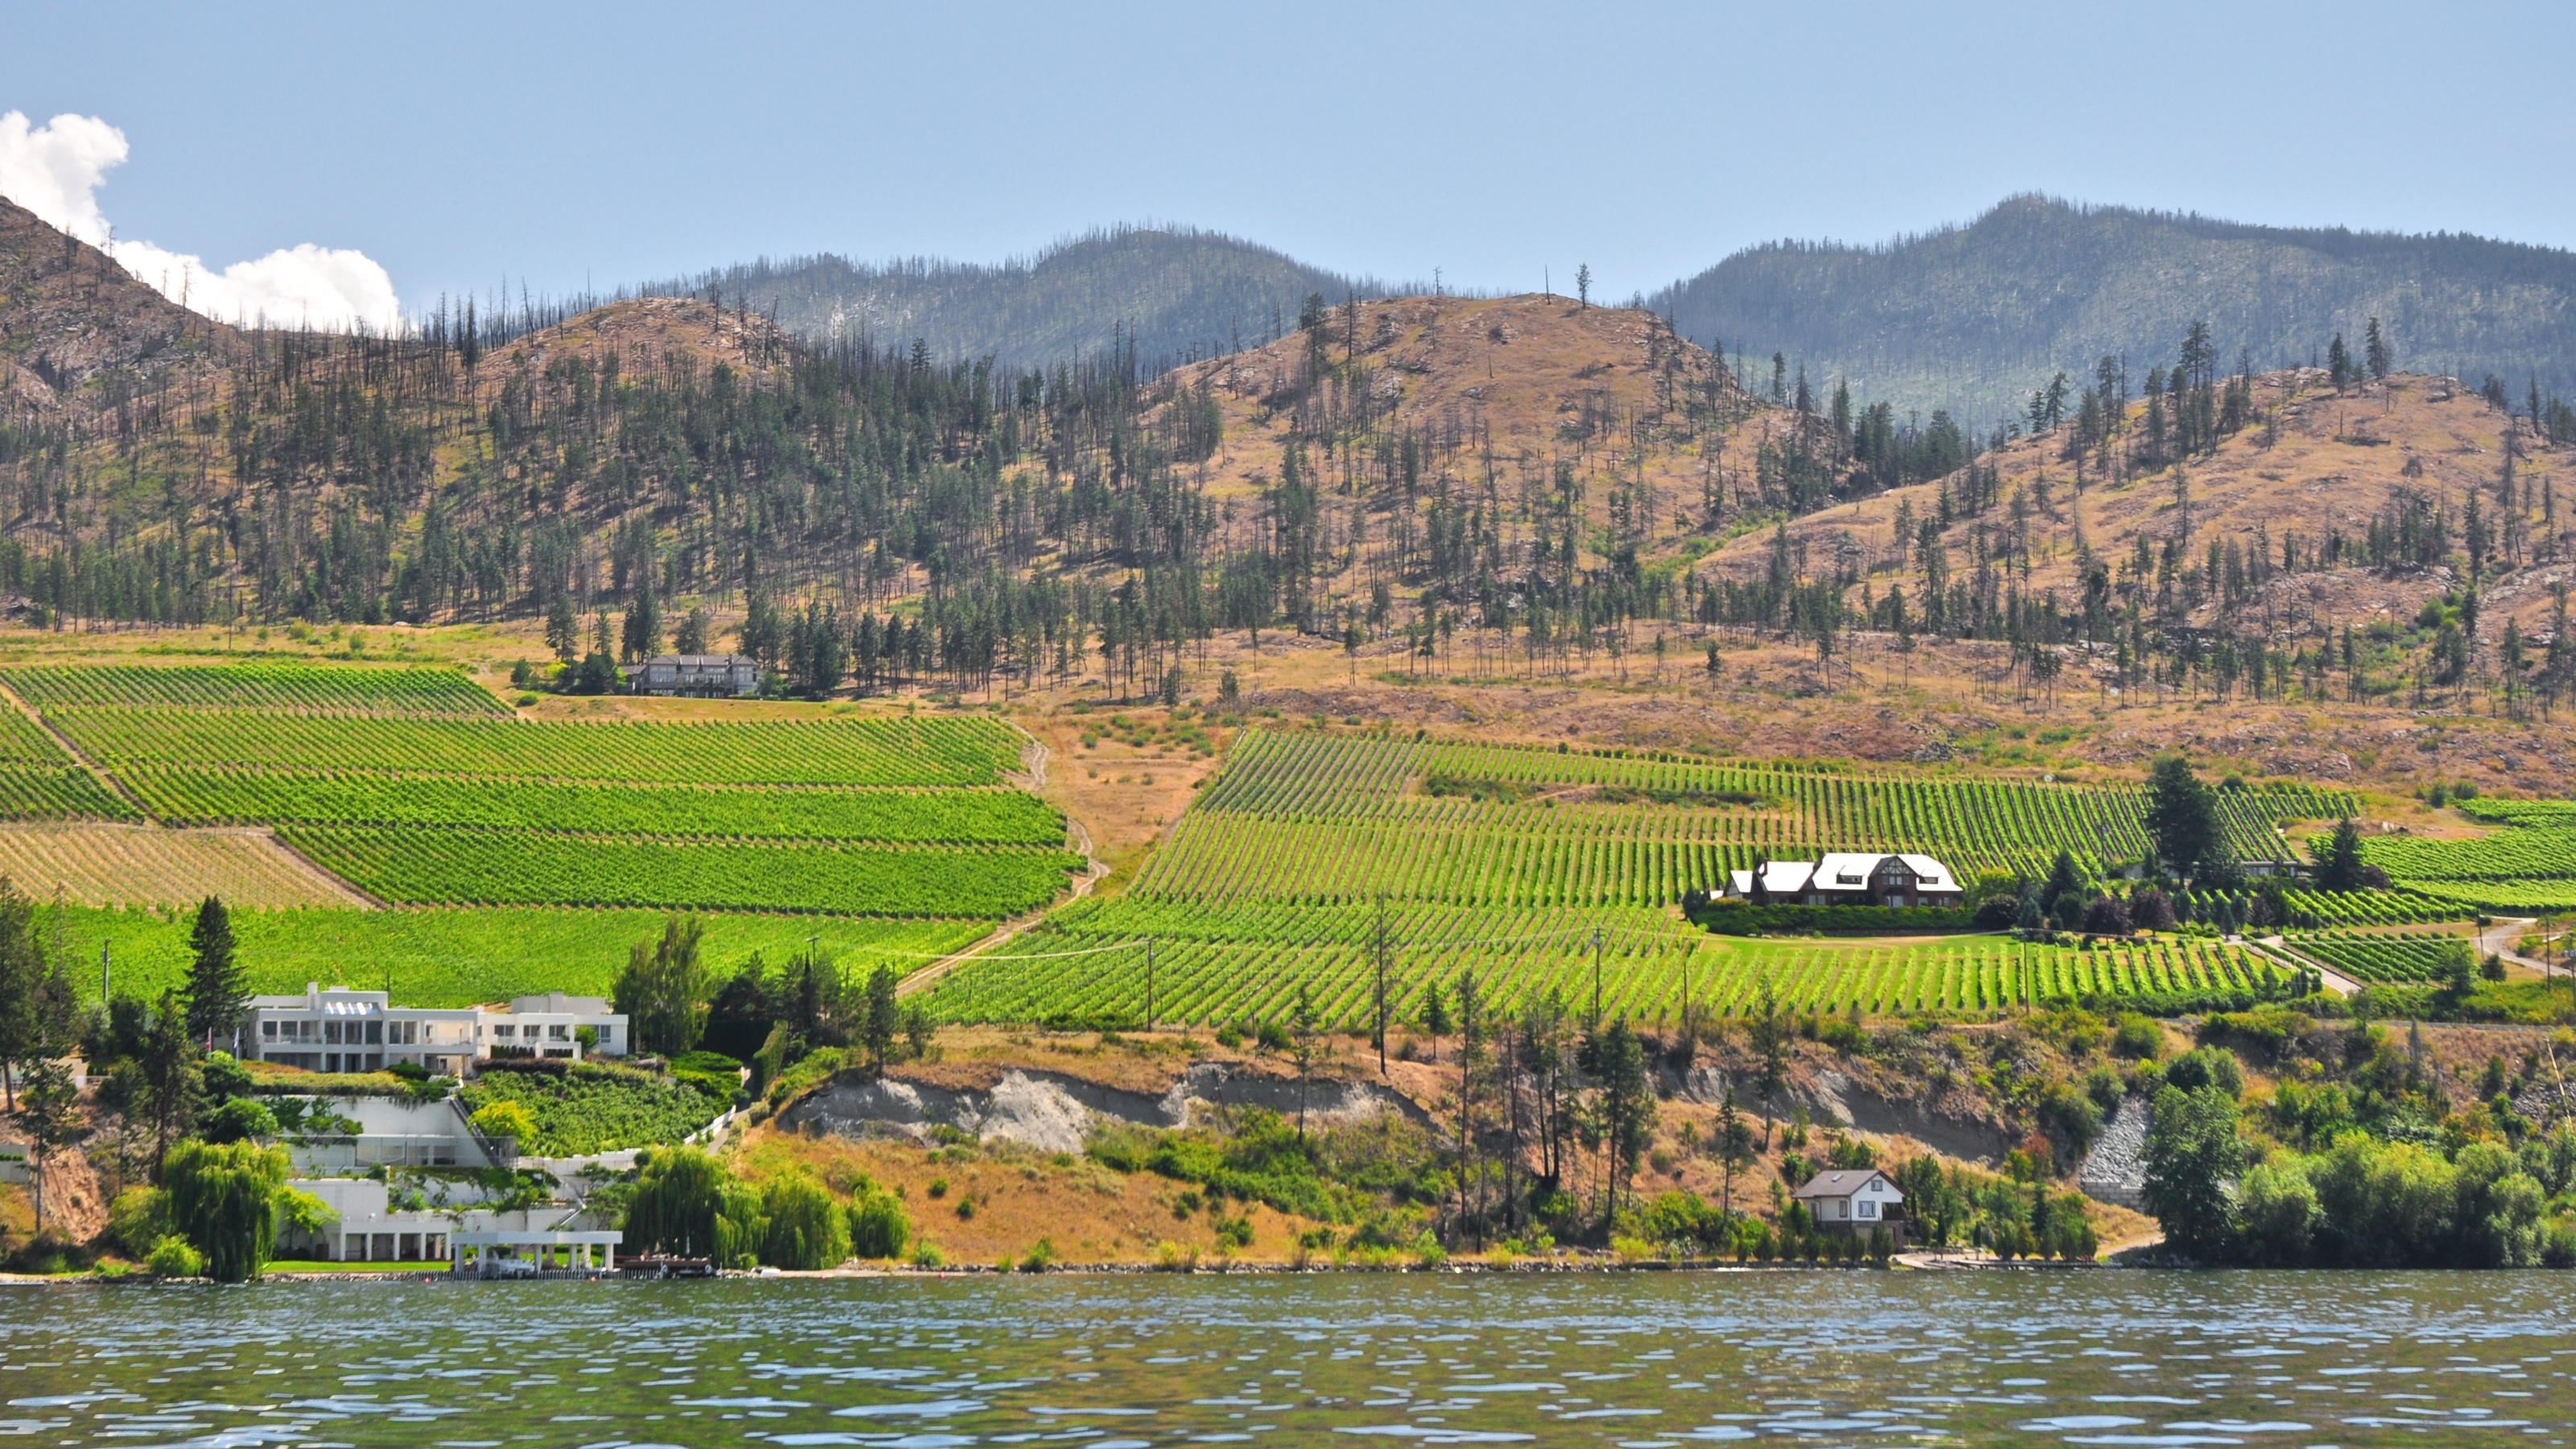 Okanagan Valley wine region  Wikipedia